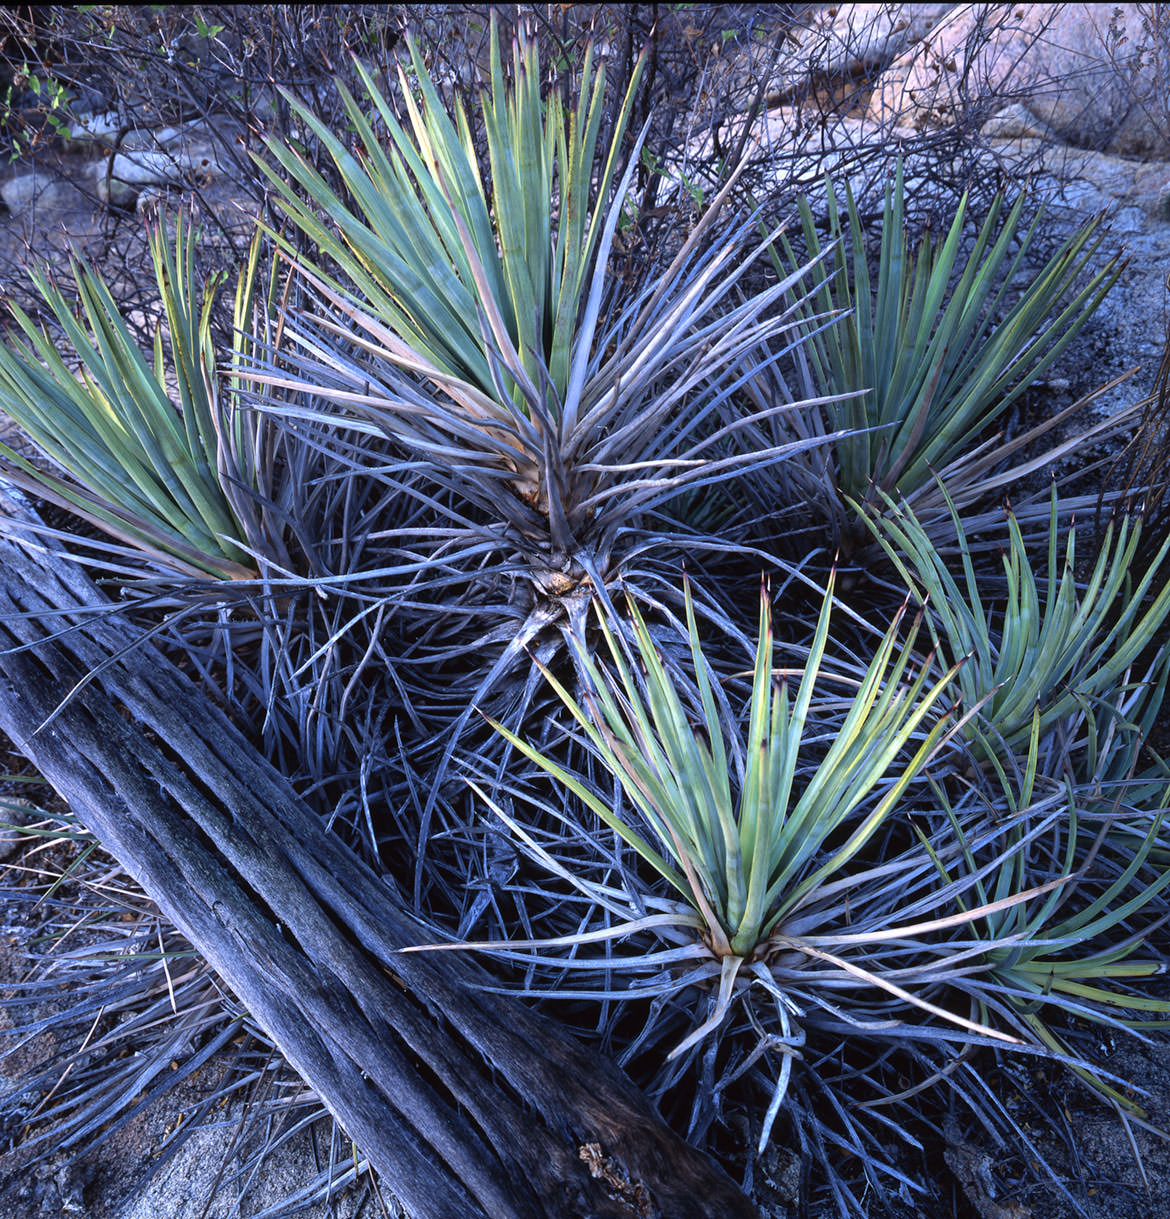 Blue Agave in the Mexican Desert